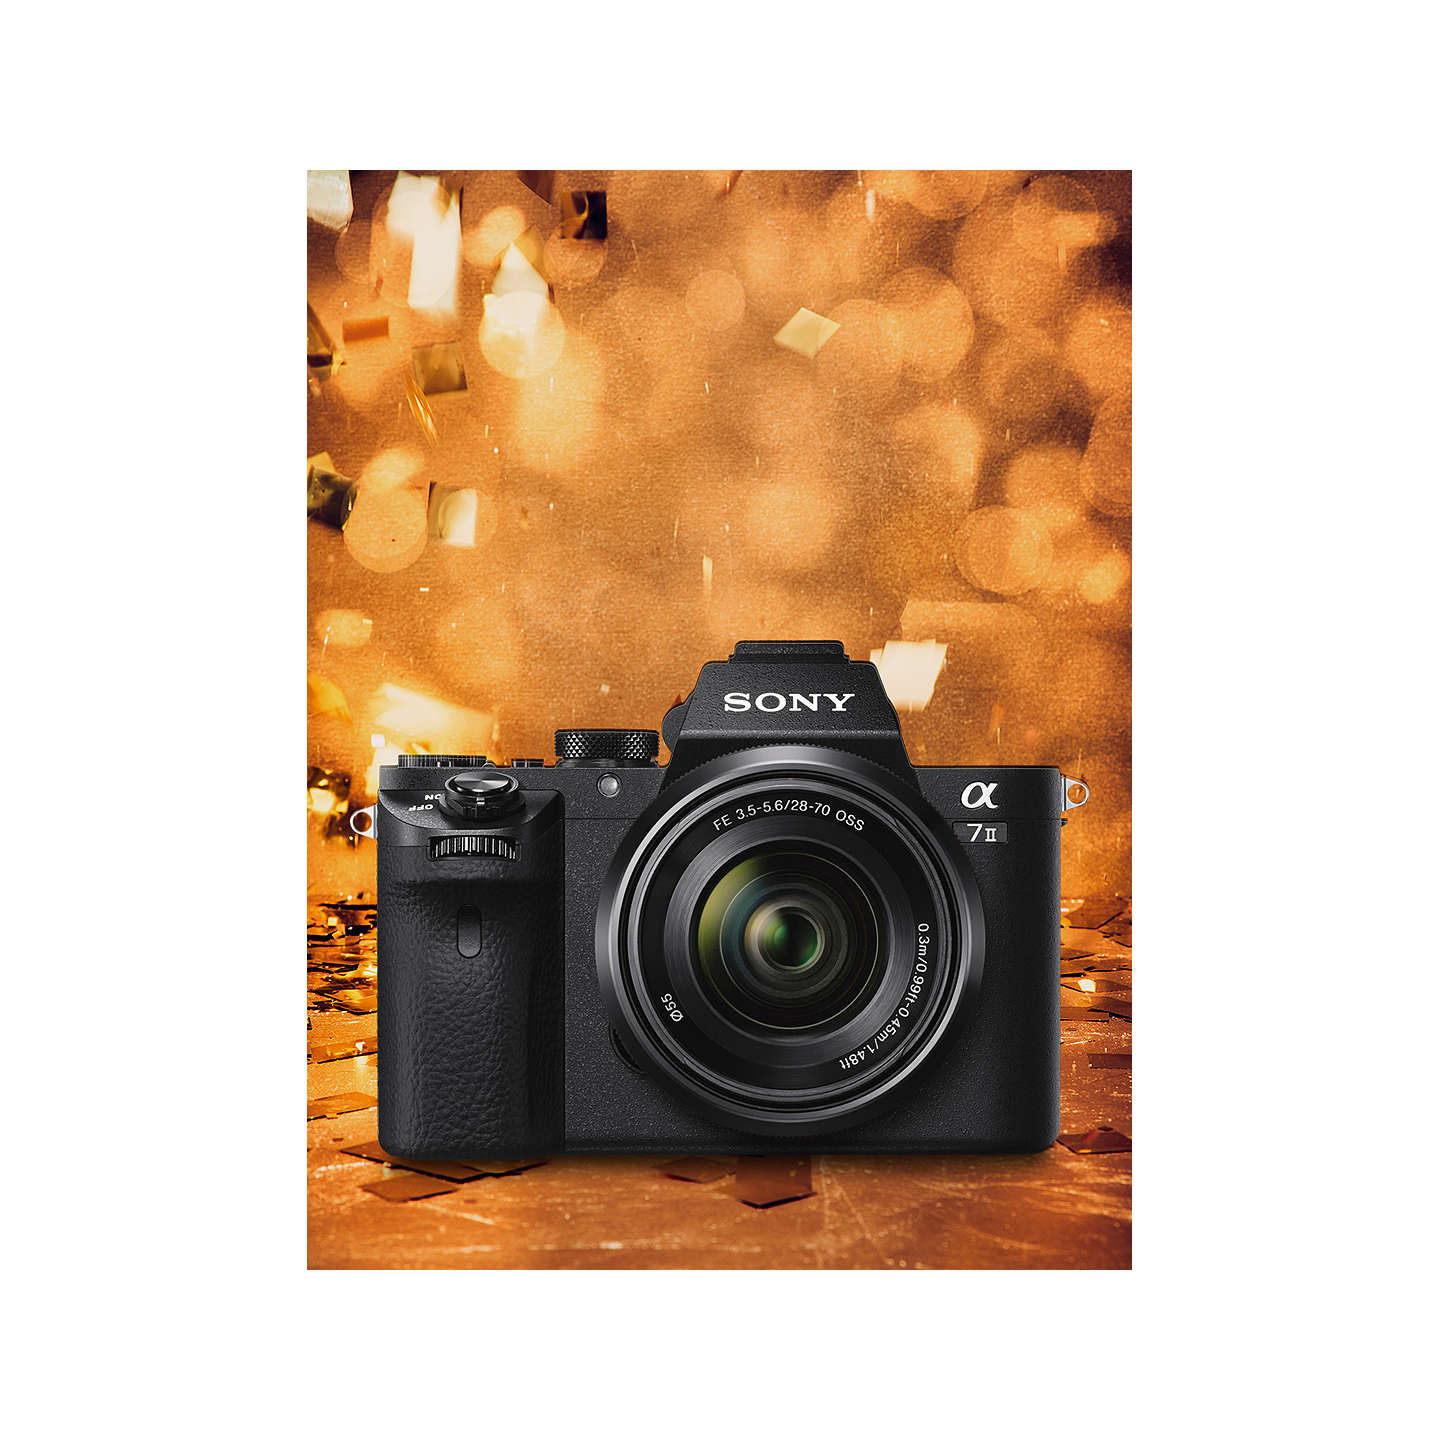 "BuySony Alpha 7 II Compact System Camera With HD 1080p, 24.3MP, Wi-Fi, NFC, OLED EVF, 5-Axis Image Stabiliser & 3"" LCD Screen, 28-70mm Lens Included Online at johnlewis.com"